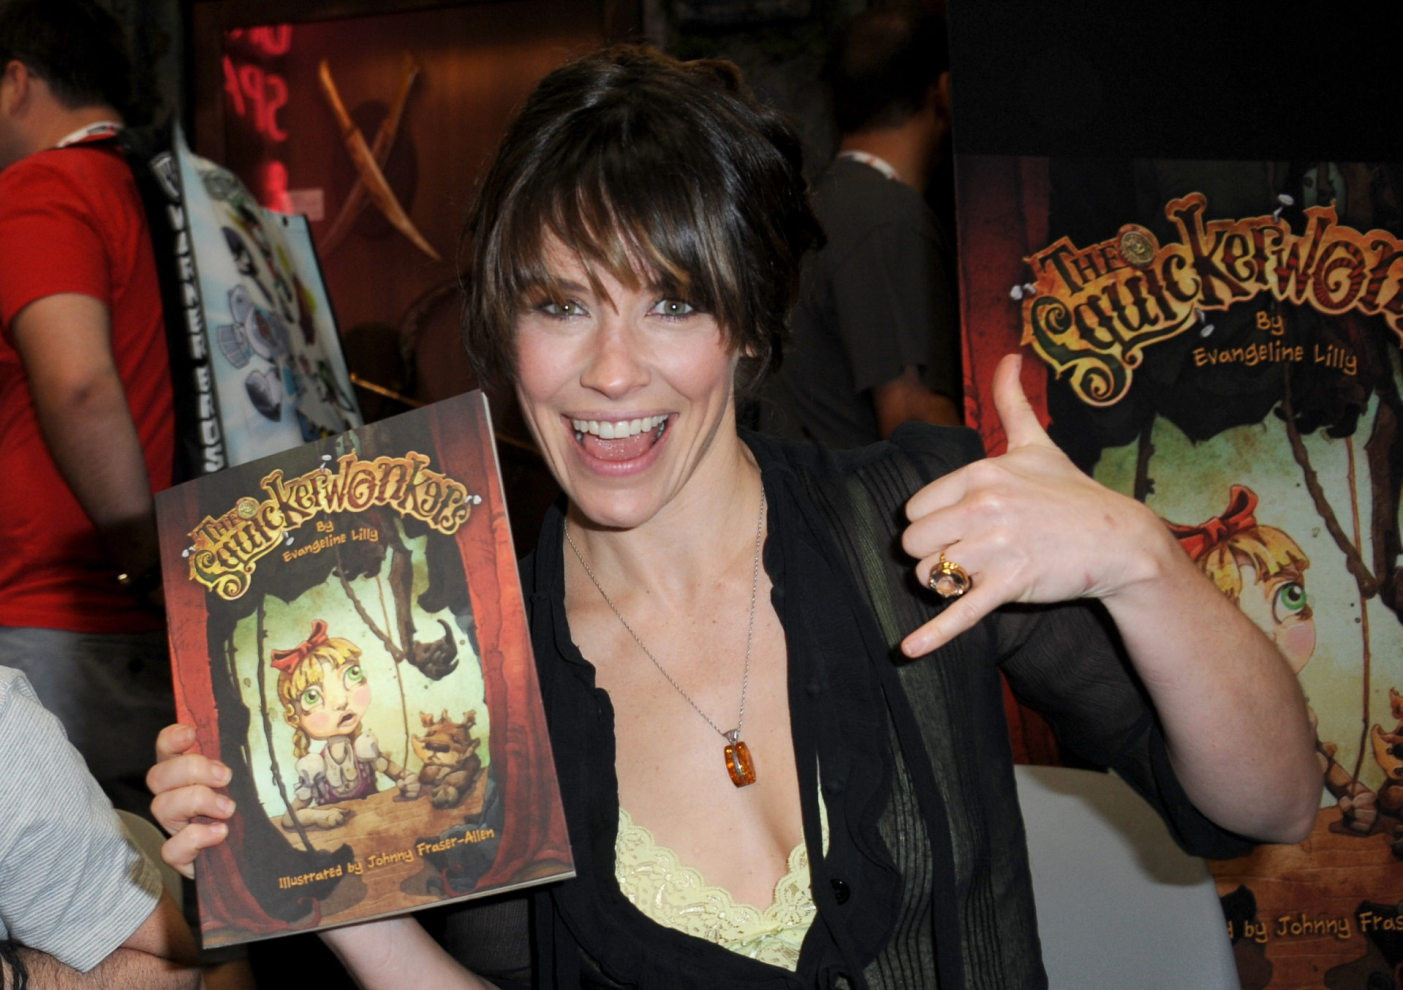 Evangeline lilly religion